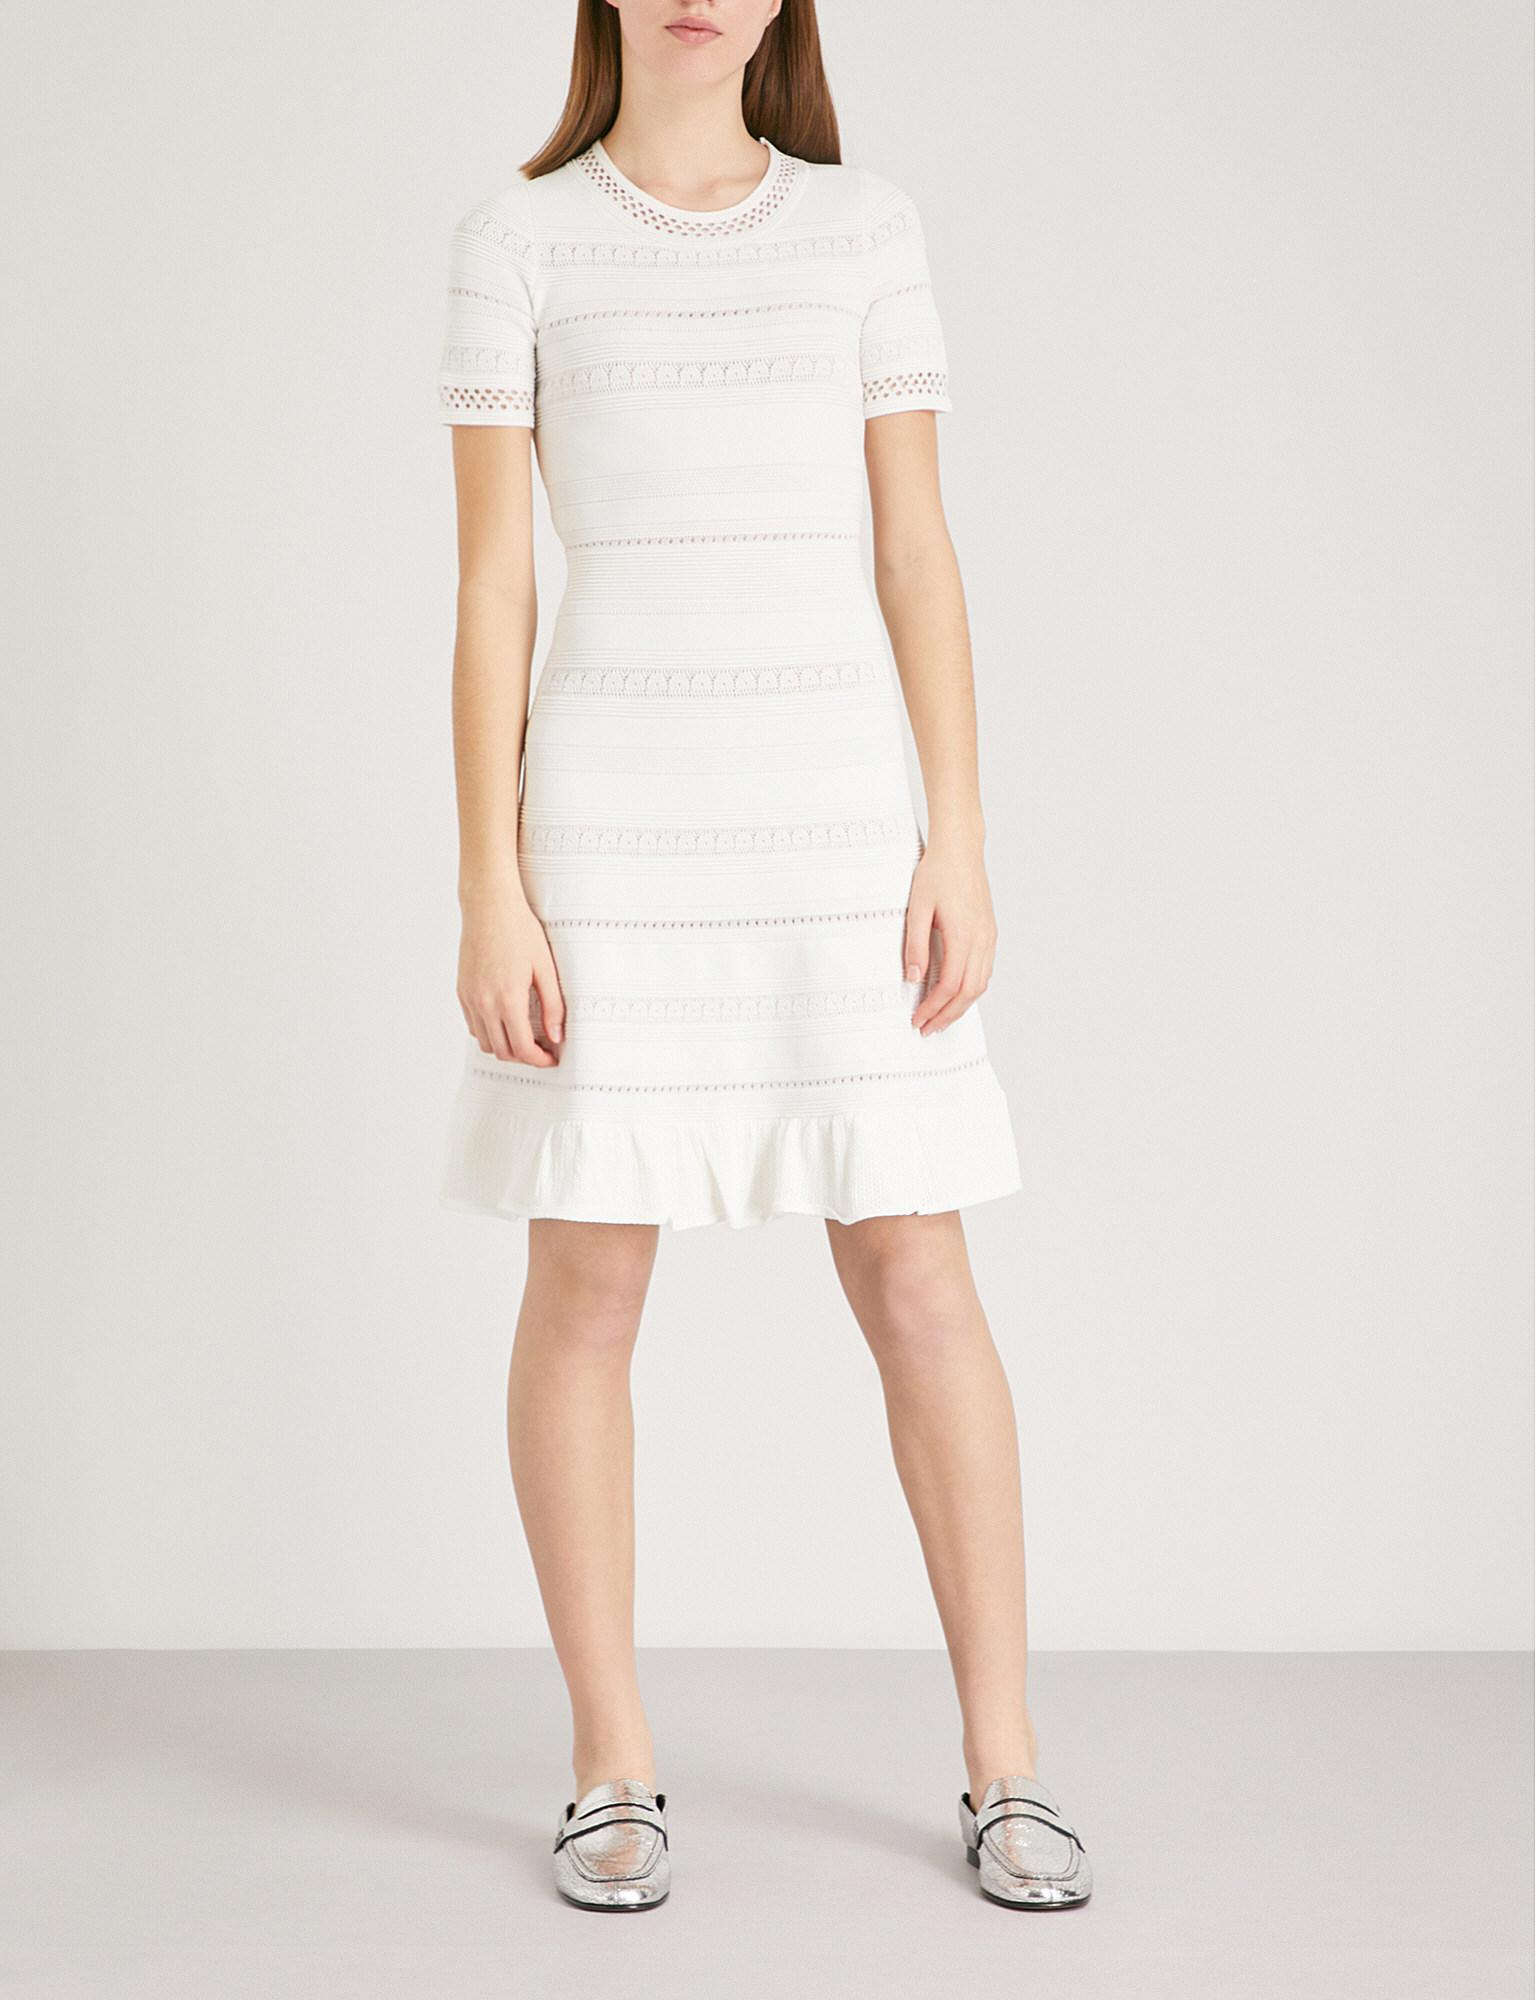 Sandro Synthetic Ribbed Knit Dress In Ecru White Lyst